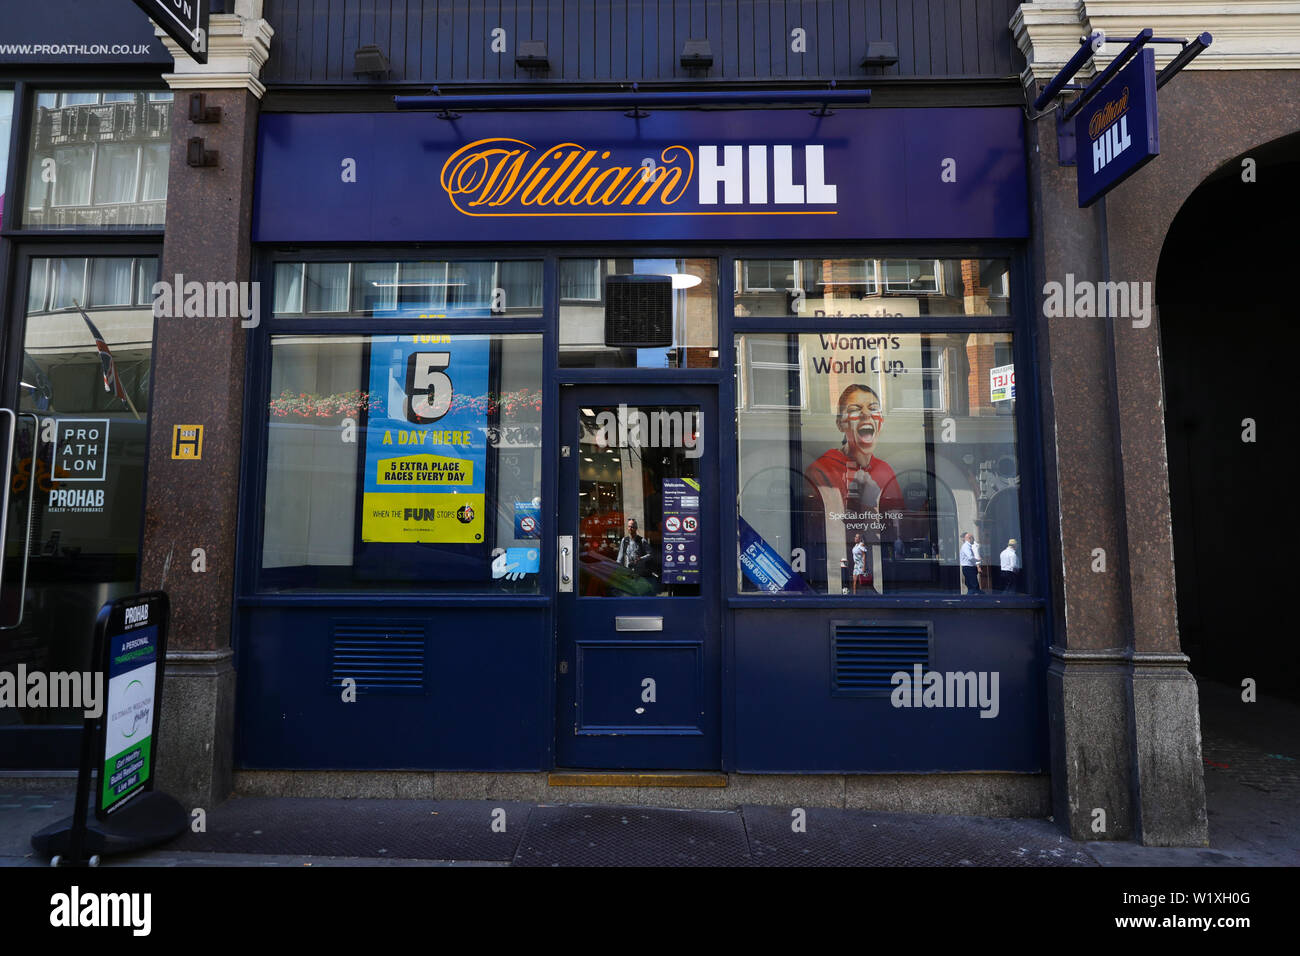 Total number of uk betting shops essex multi cryptocurrency miner